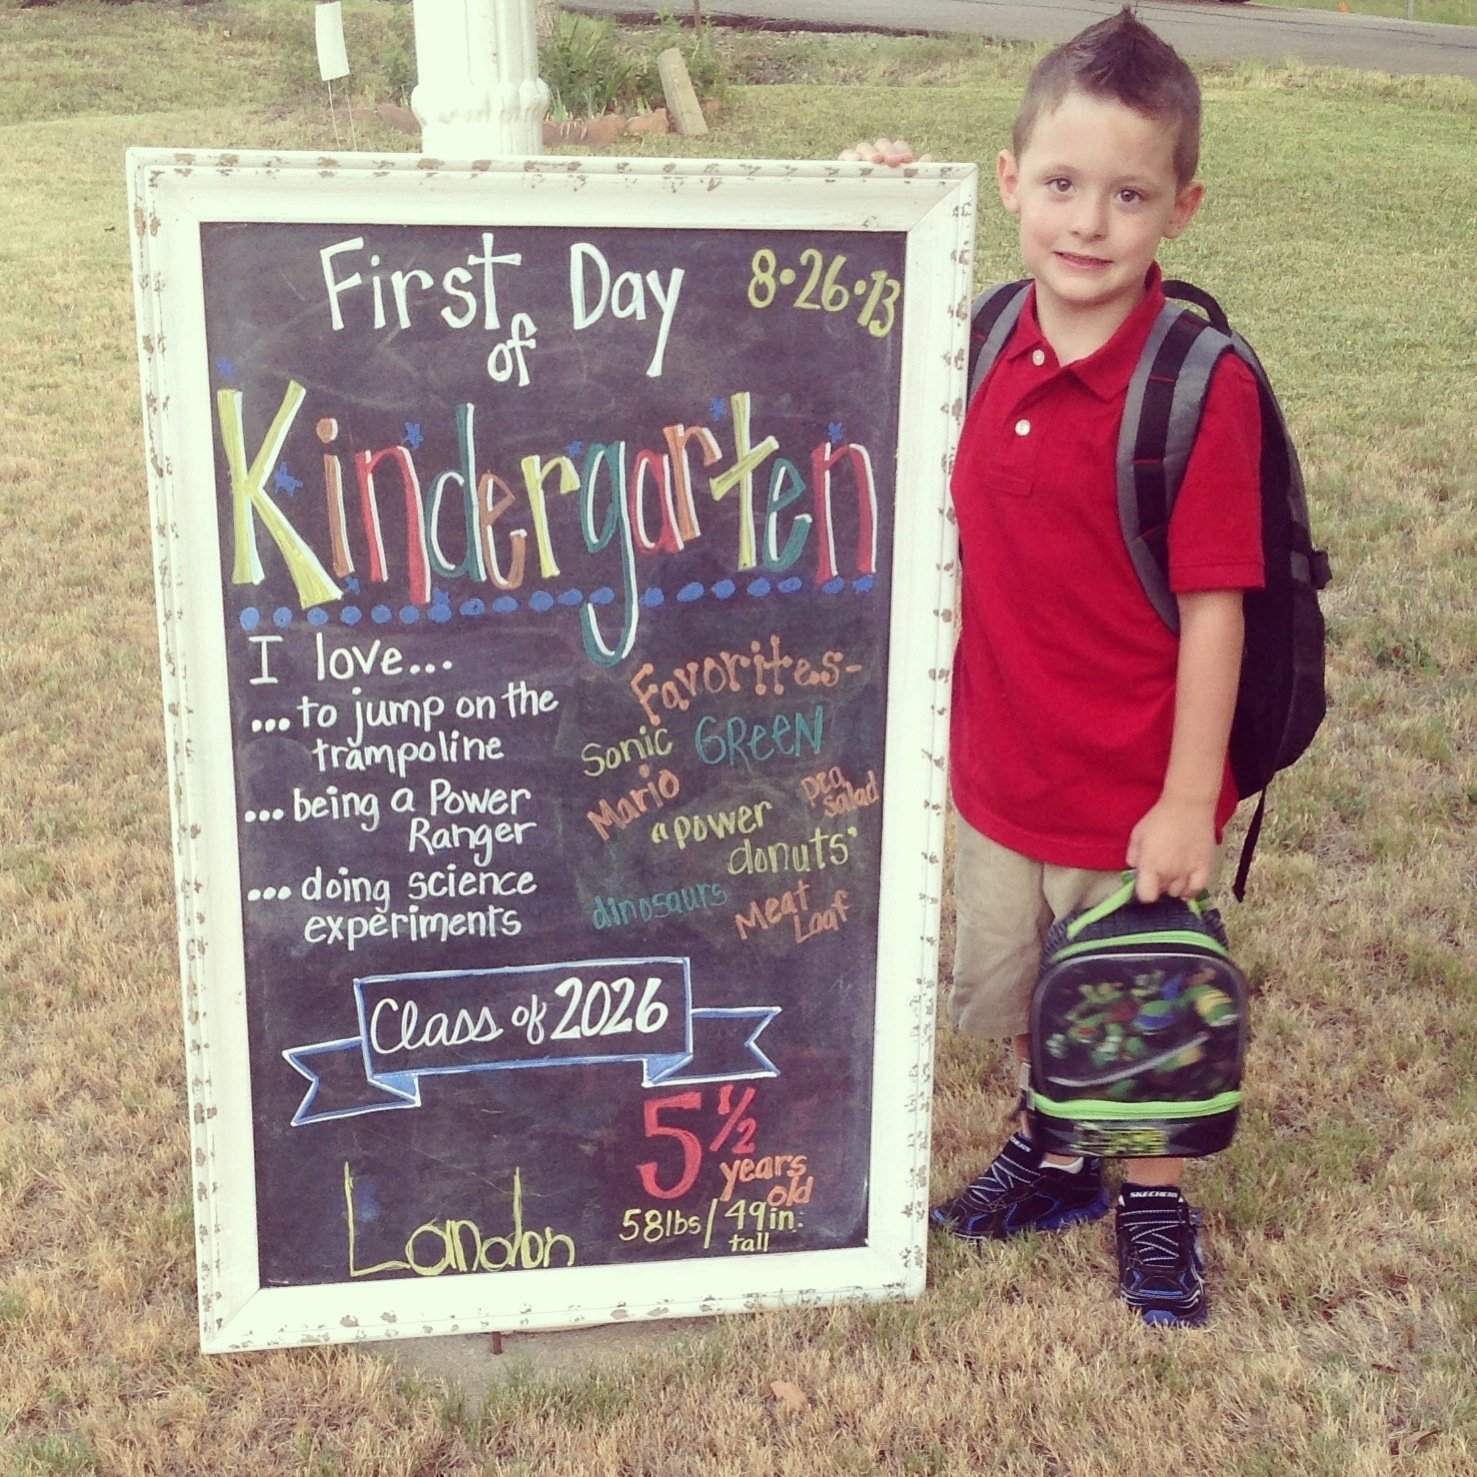 10 Spectacular First Day Of Kindergarten Picture Ideas first day of kindergarten chalkboard things ive made 2